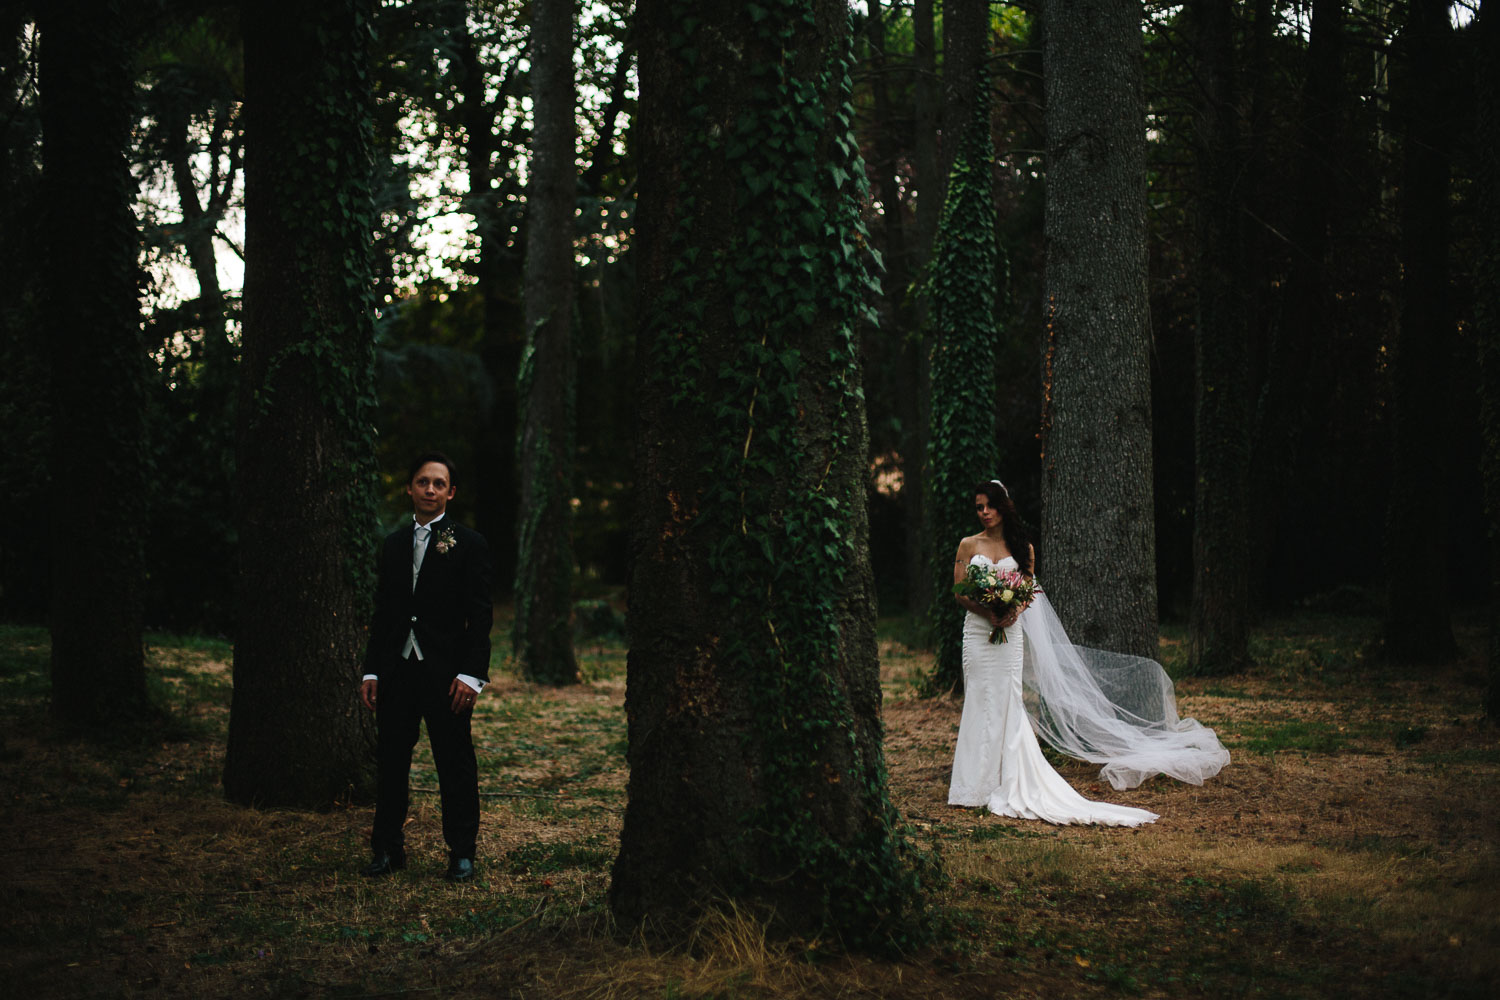 81-groom-bride-wood.jpg